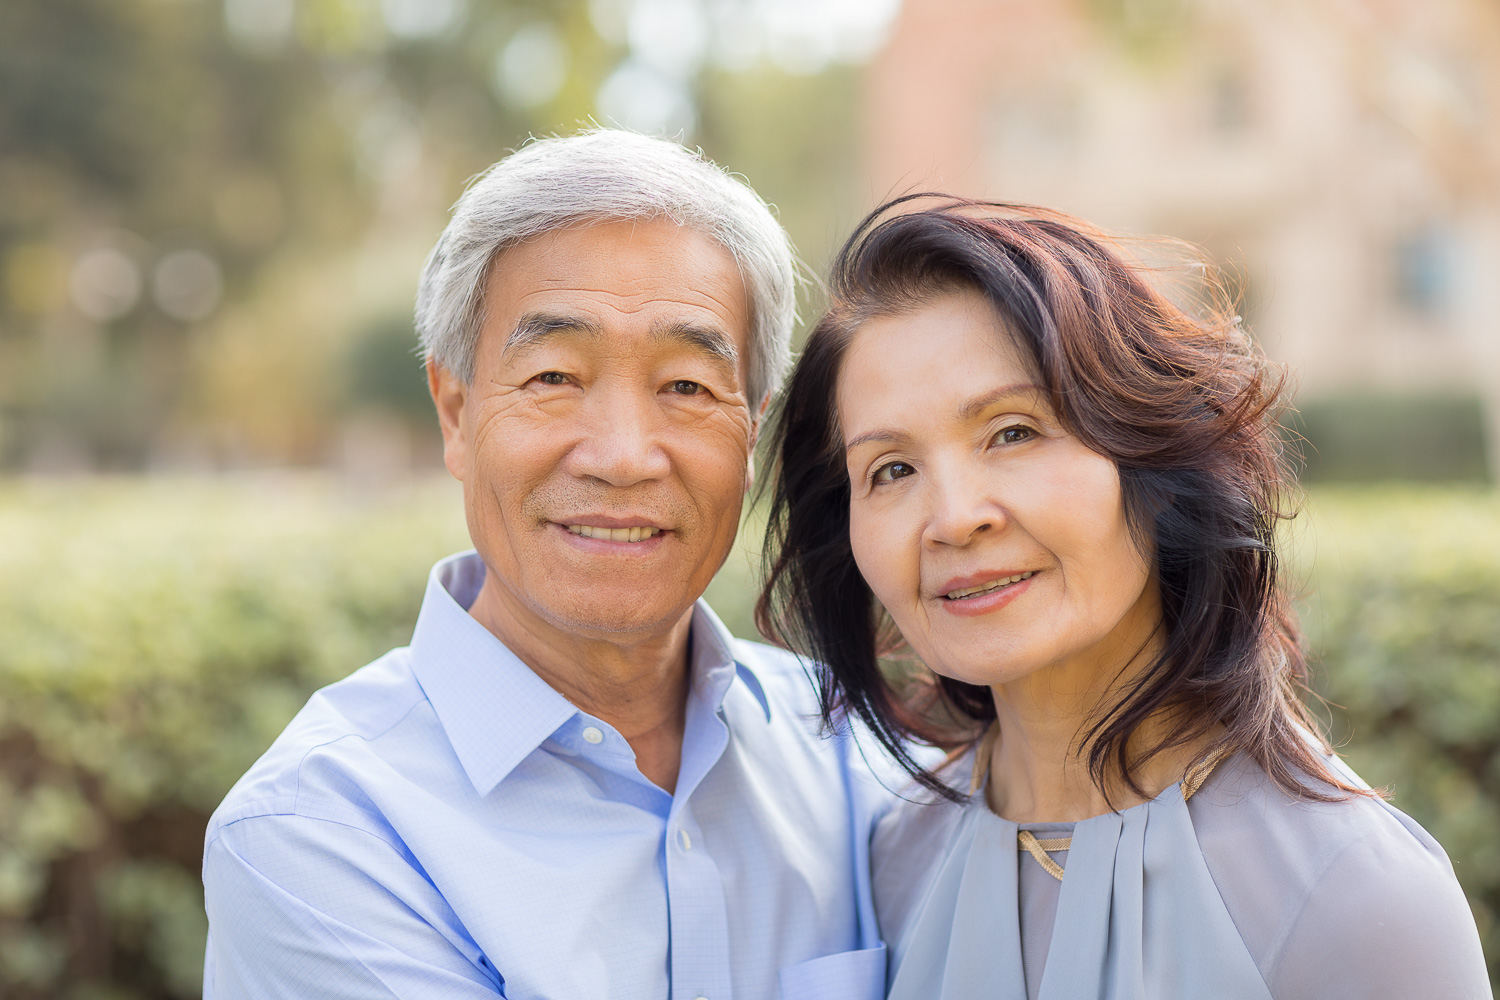 Husband and wife portrait at UCLA